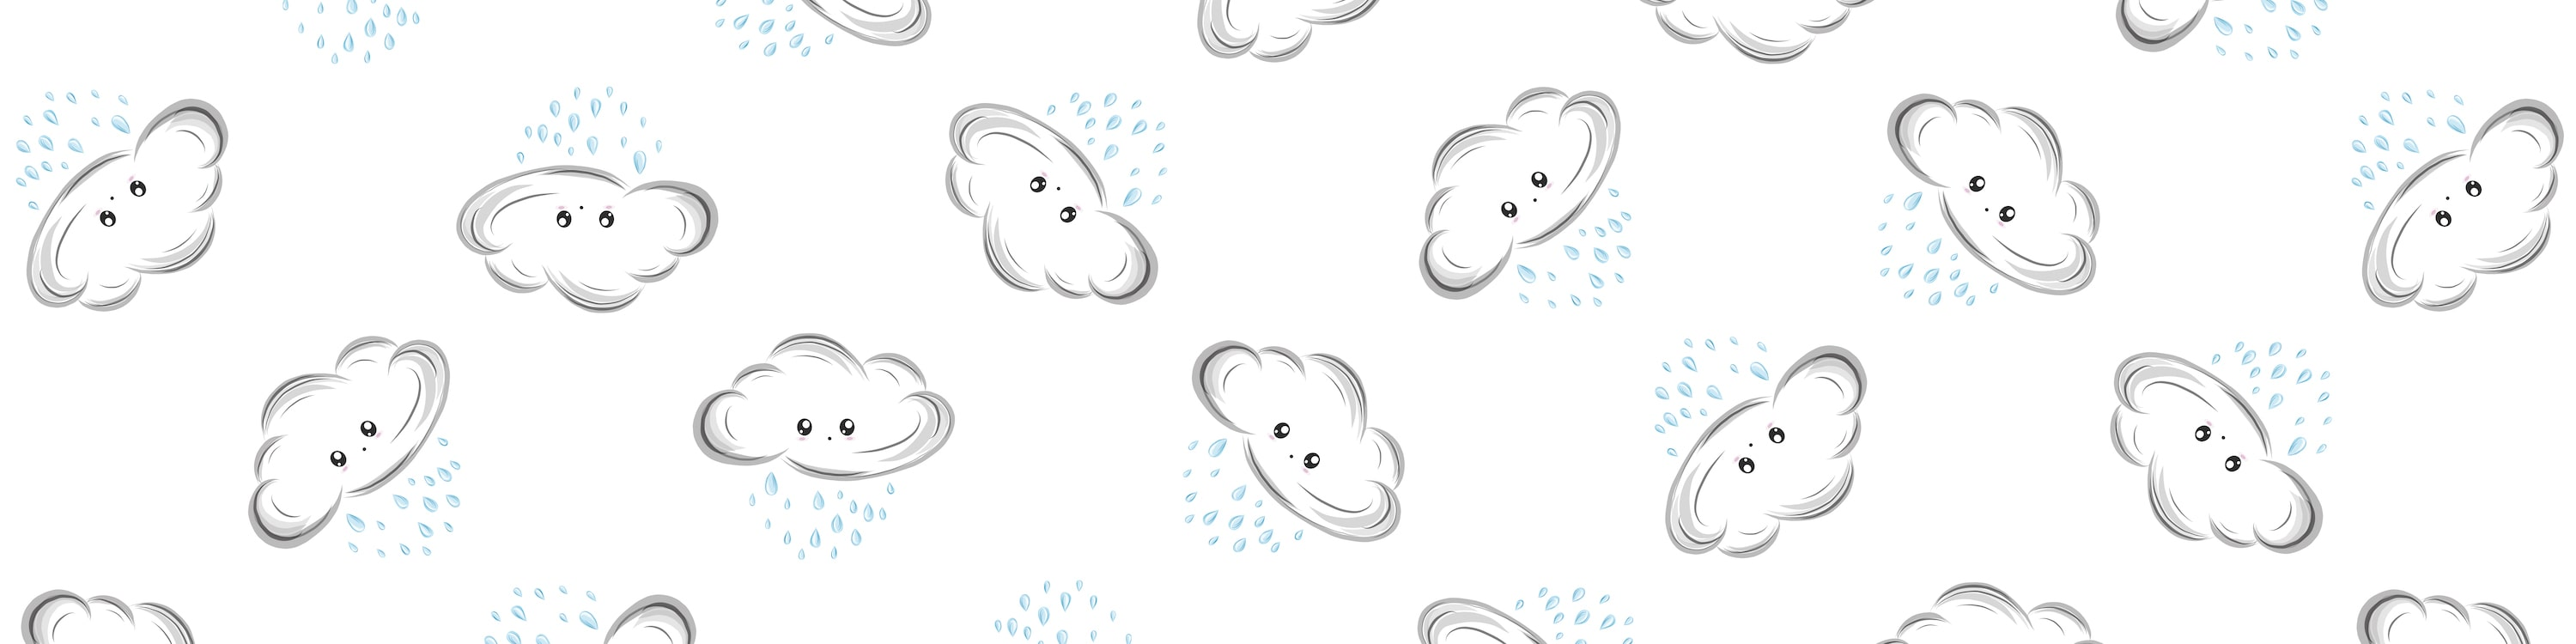 Repeating Patteern of Raining Clouds